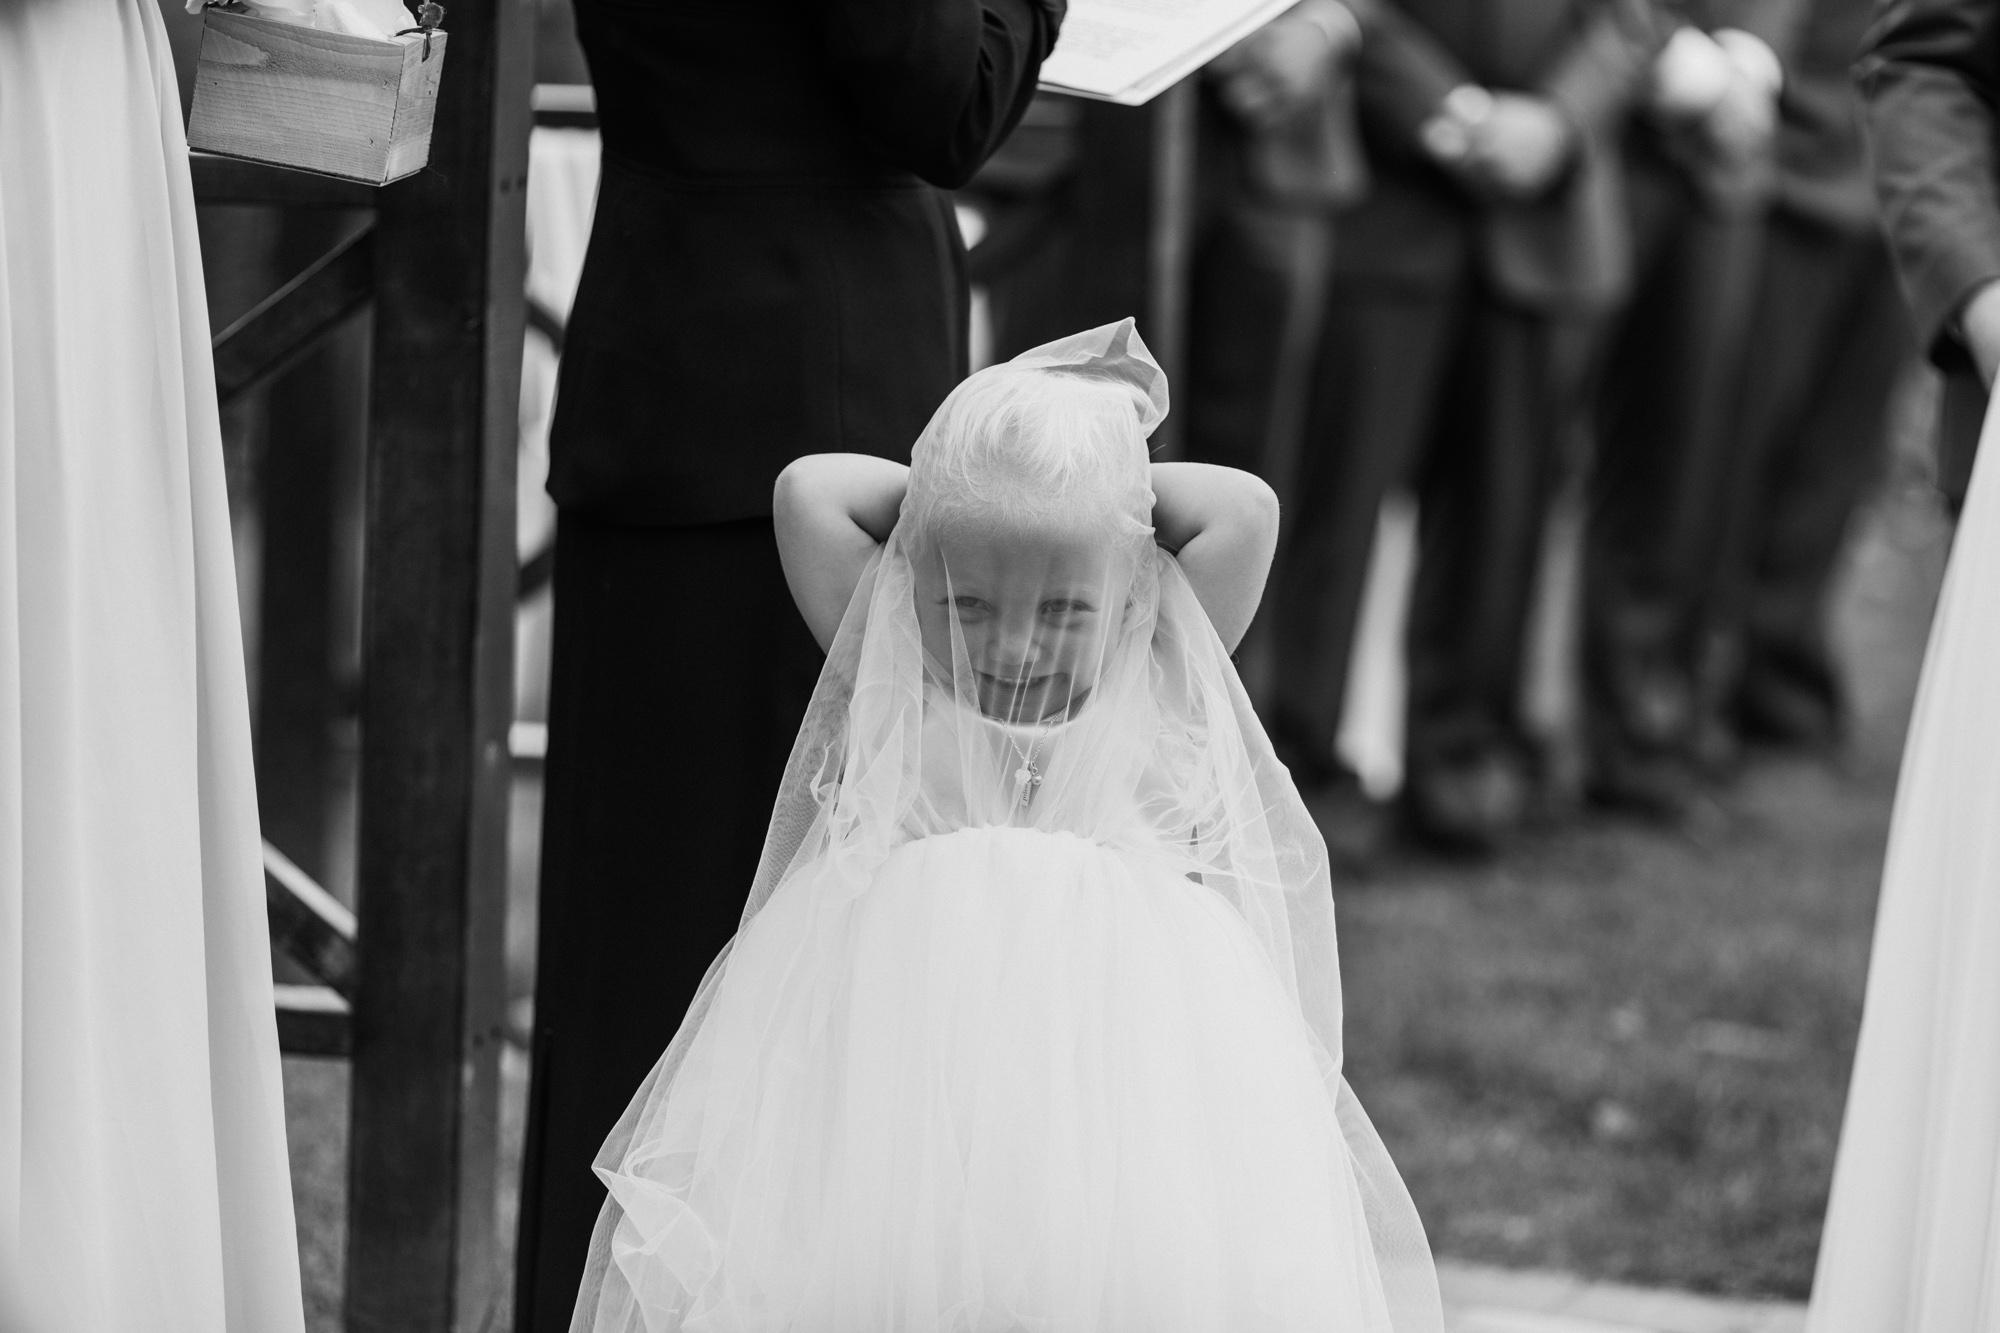 flower-girl-wedding-with-dress-over-head